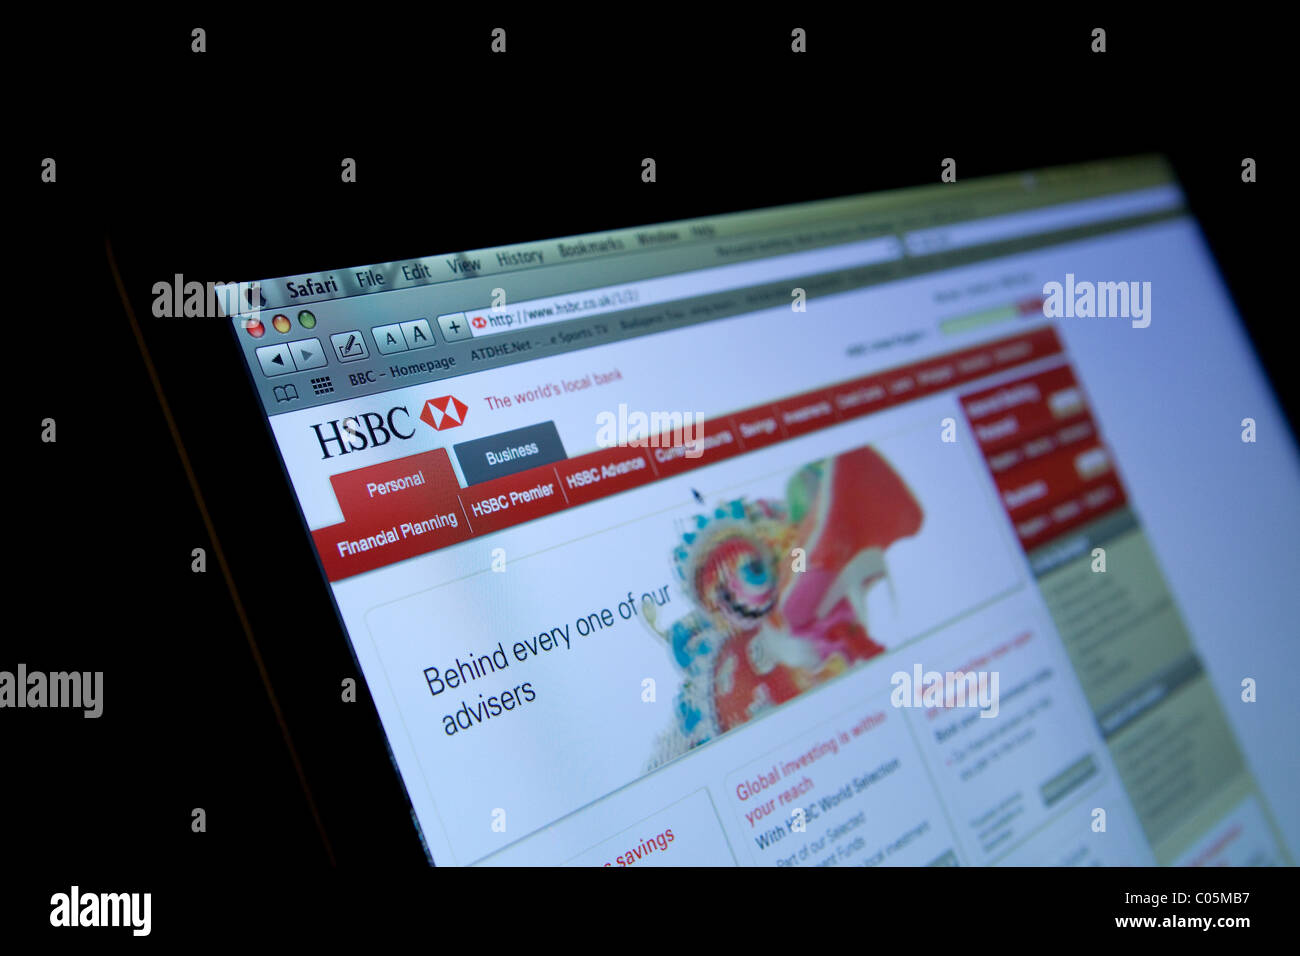 La HSBC banque en ligne home page Photo Stock